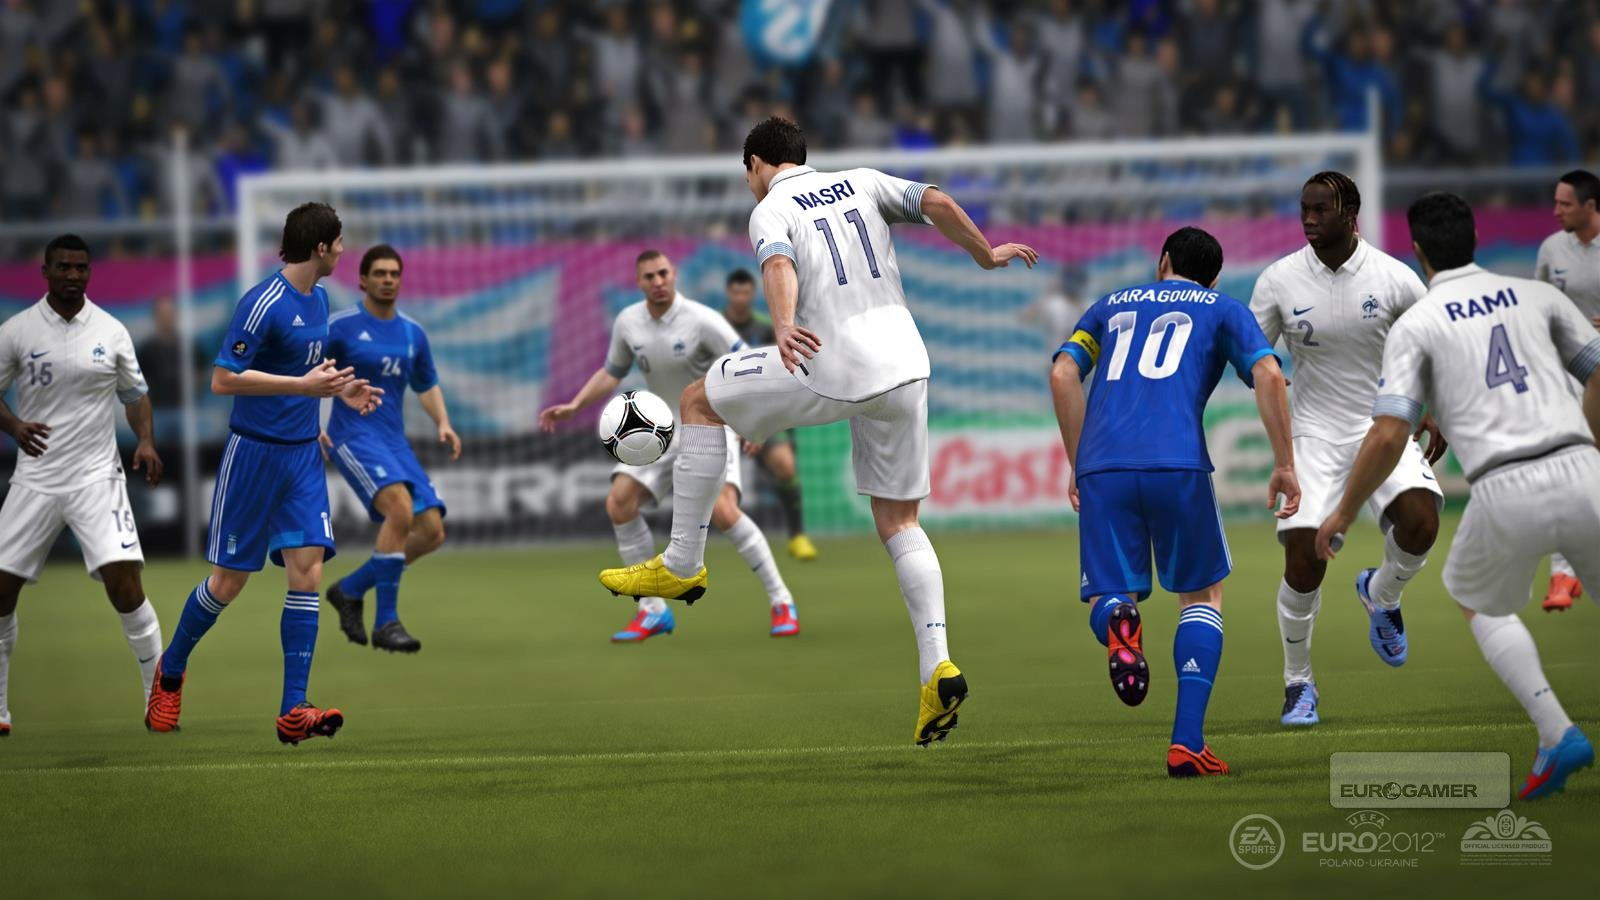 Large corner kicking will create opportunities to score more in FIFA 15